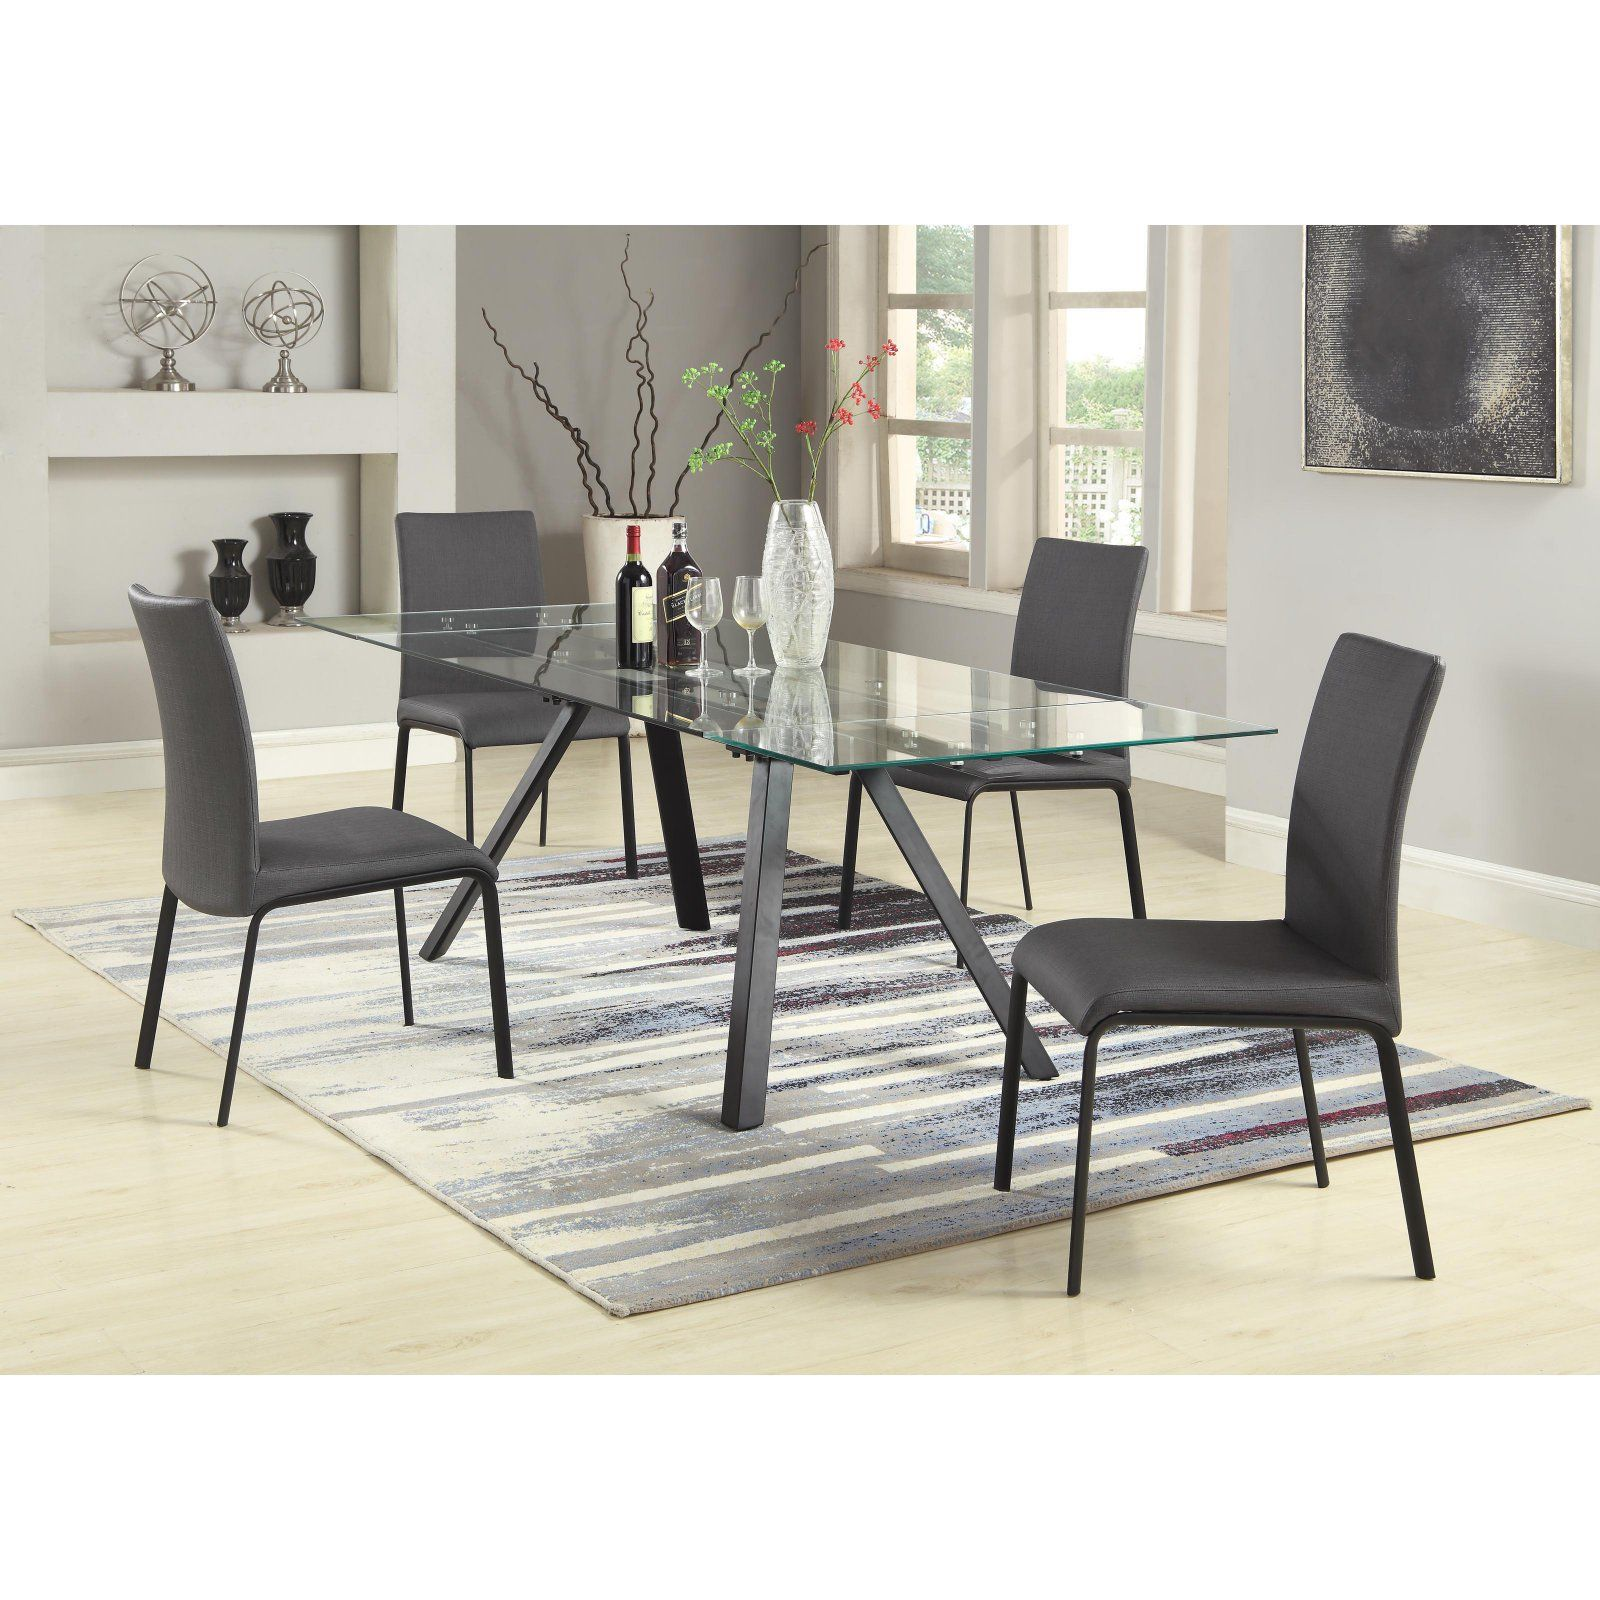 Chintaly Aida 5 Piece Dining Table Set Dining Table Black